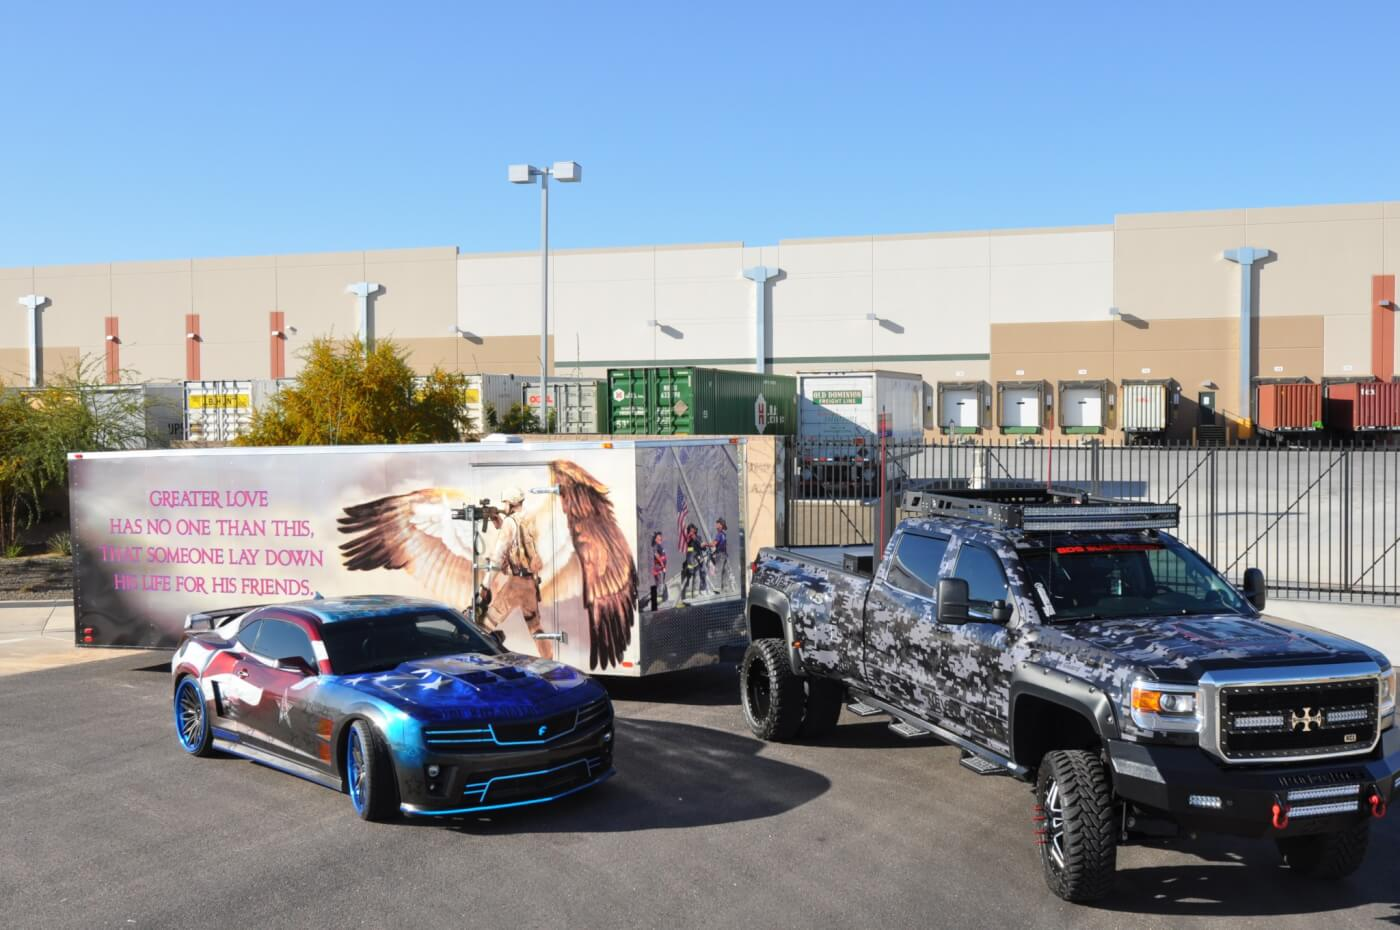 Kelly Fromm is passionate about helping wounded warriors and he takes his decked-out Camaro all over the country to raise awareness. He uses this 2015 GMC Denali to haul the car and trailer.